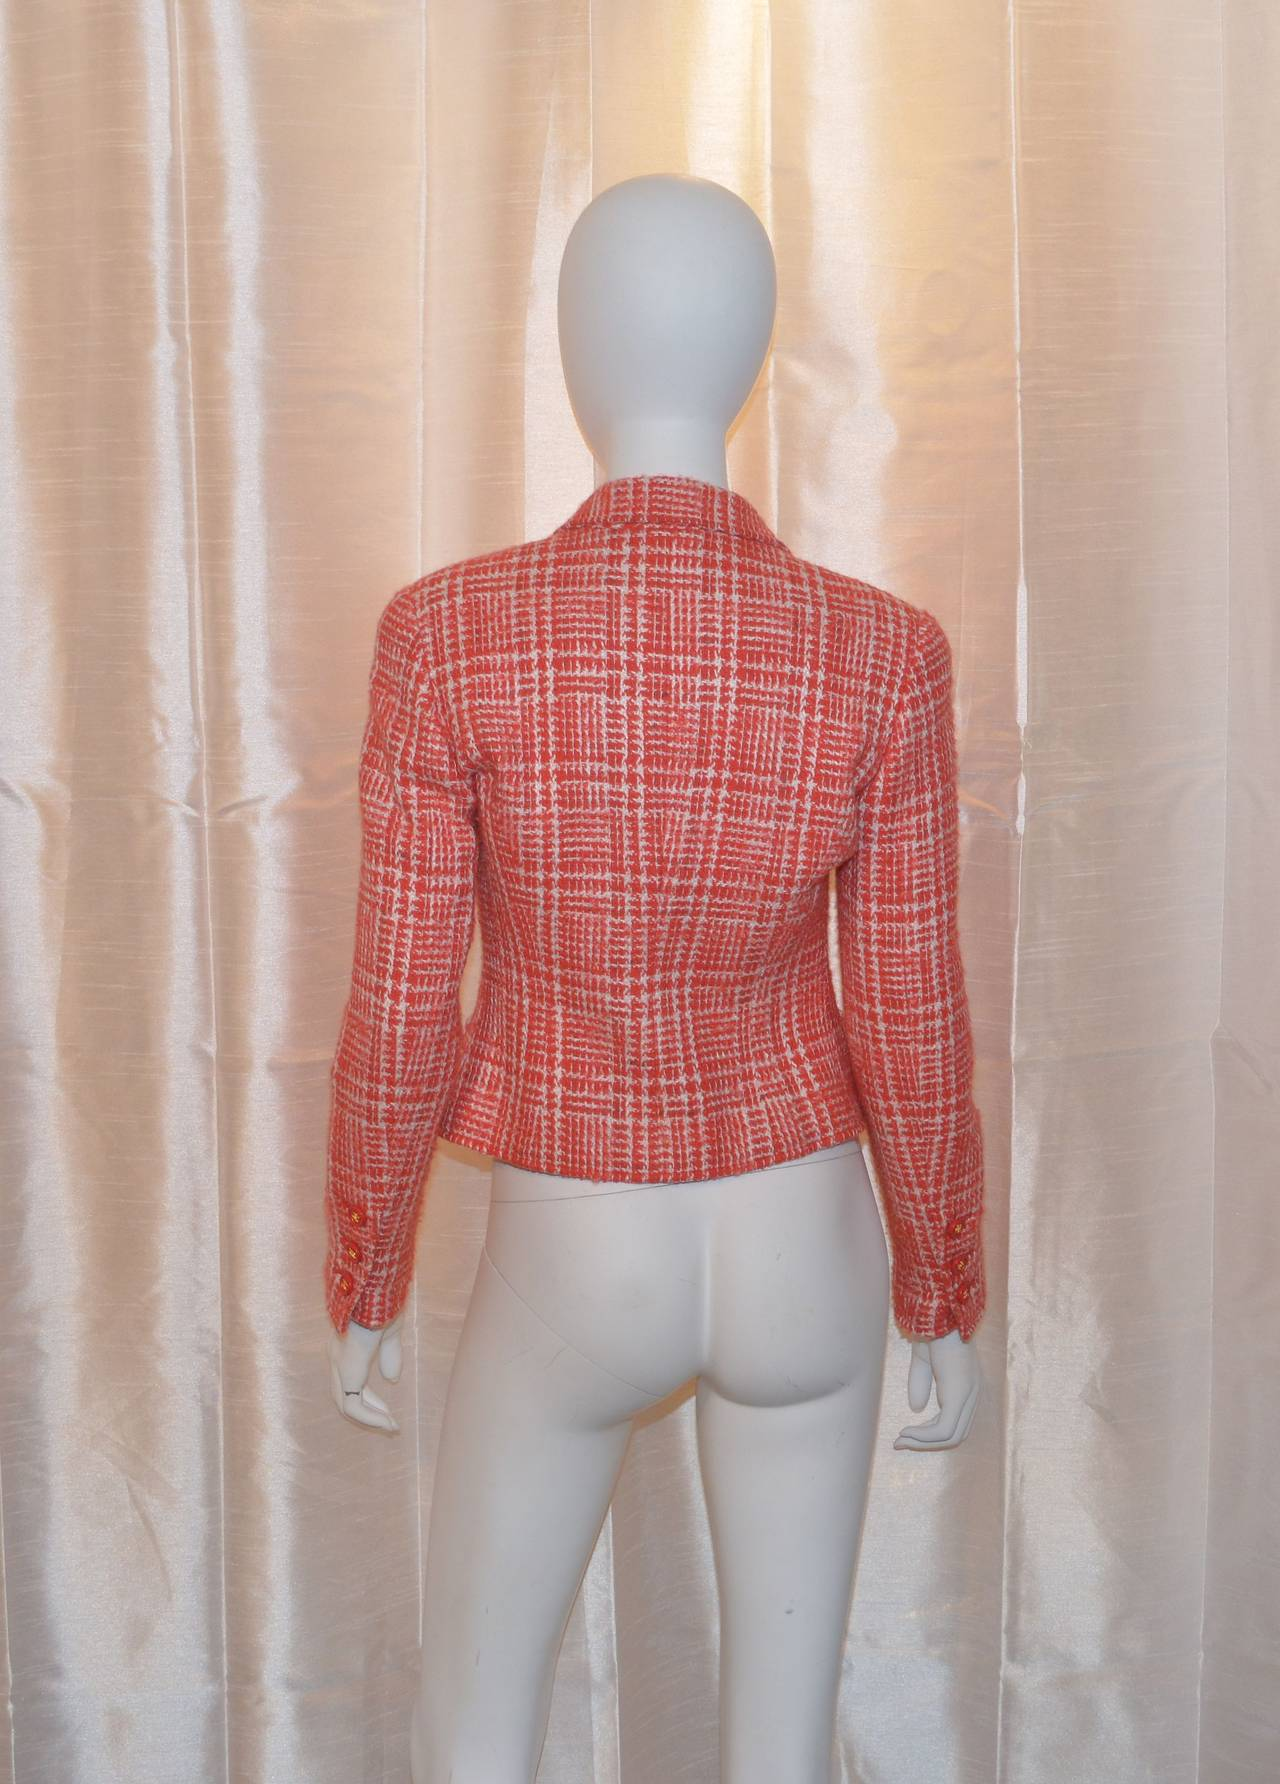 Chanel Red 1997 P Summer Coral Orange Tweed Button Blazer Jacket 2